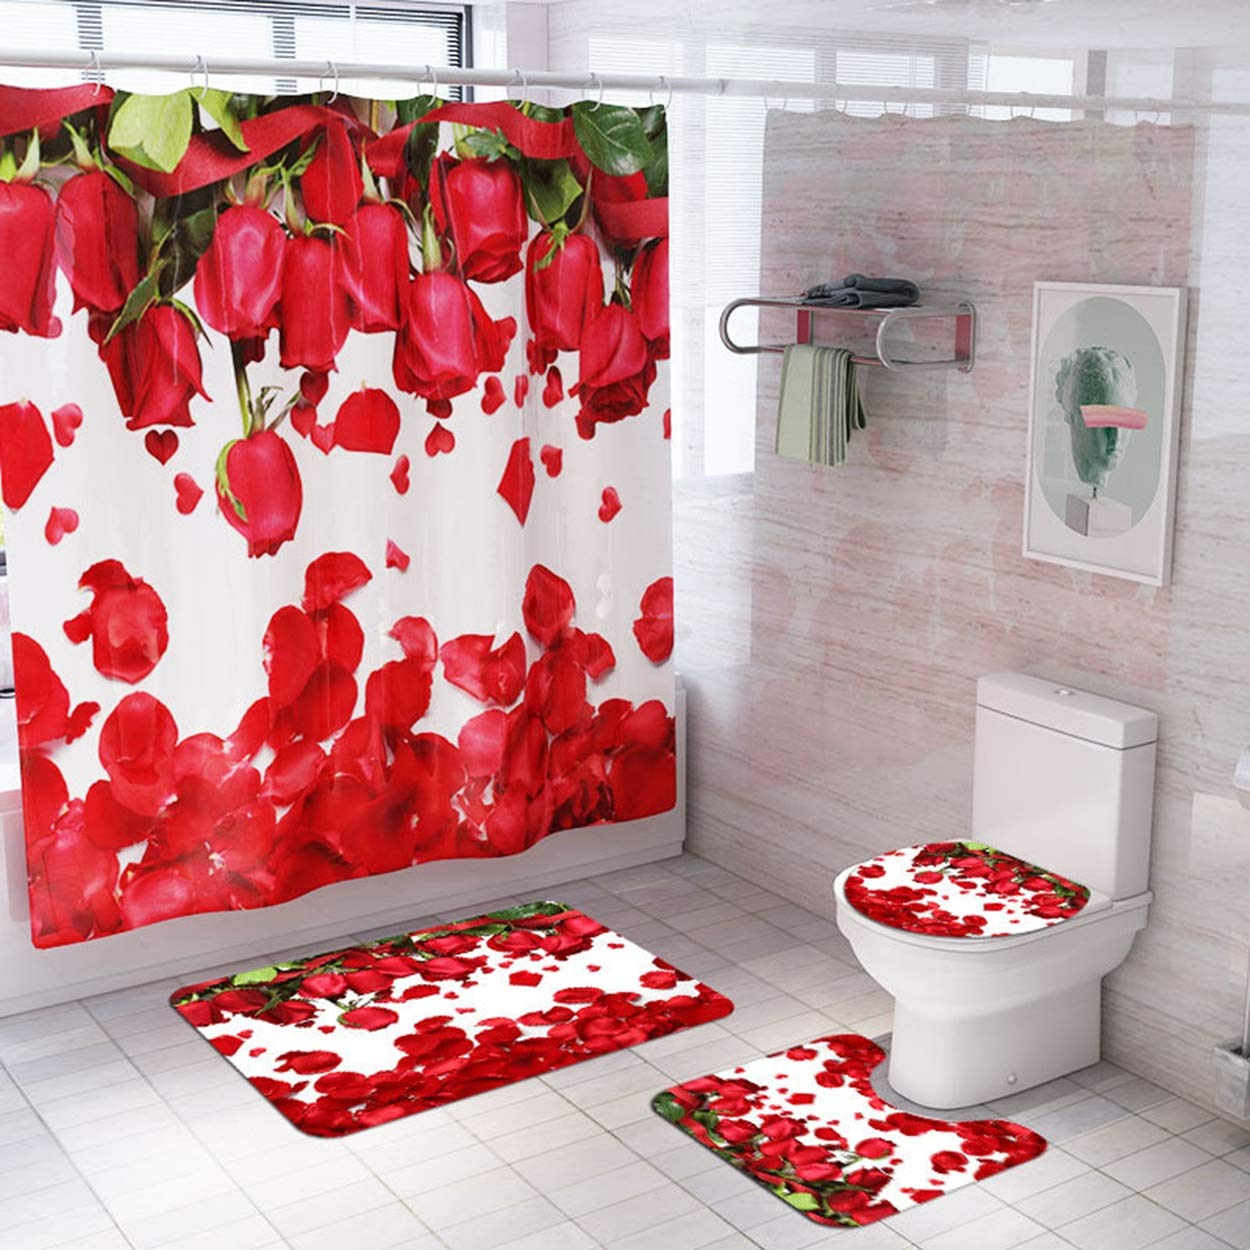 Z&S Shower Curtain + Carpet (Set of 4), Rose Petals Pattern Modern Home Non-Slip Bathroom Mat 180 180Cm